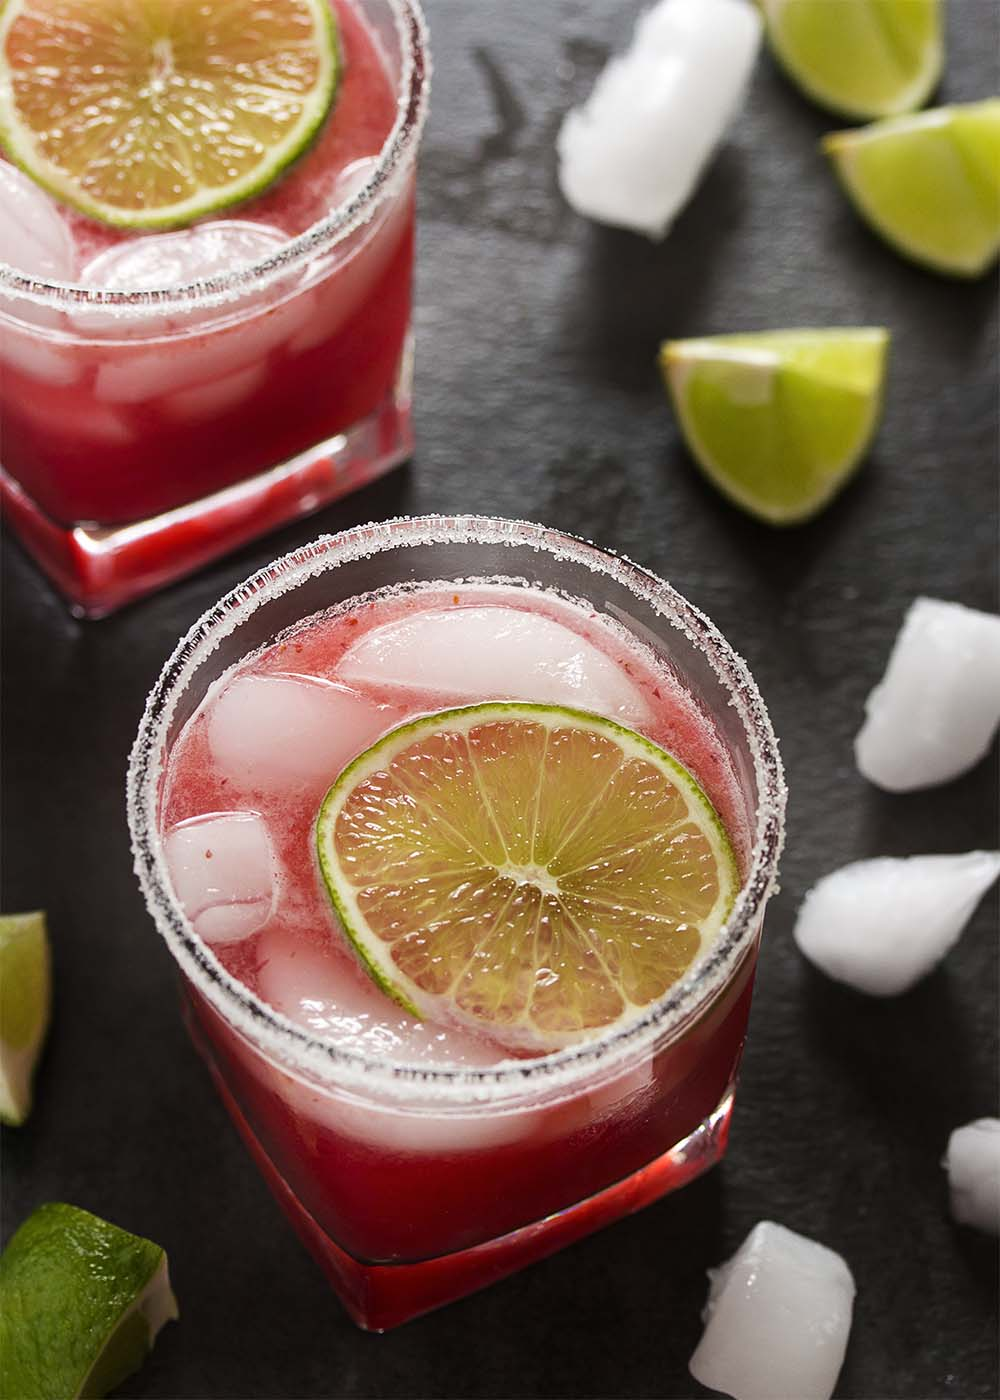 Fresh cranberry sauce is the secret to these intensely flavored tart-sweet fresh cranberry margaritas. Make them by the glass or in a pitcher for parties.   justalittlebitofbacon.com